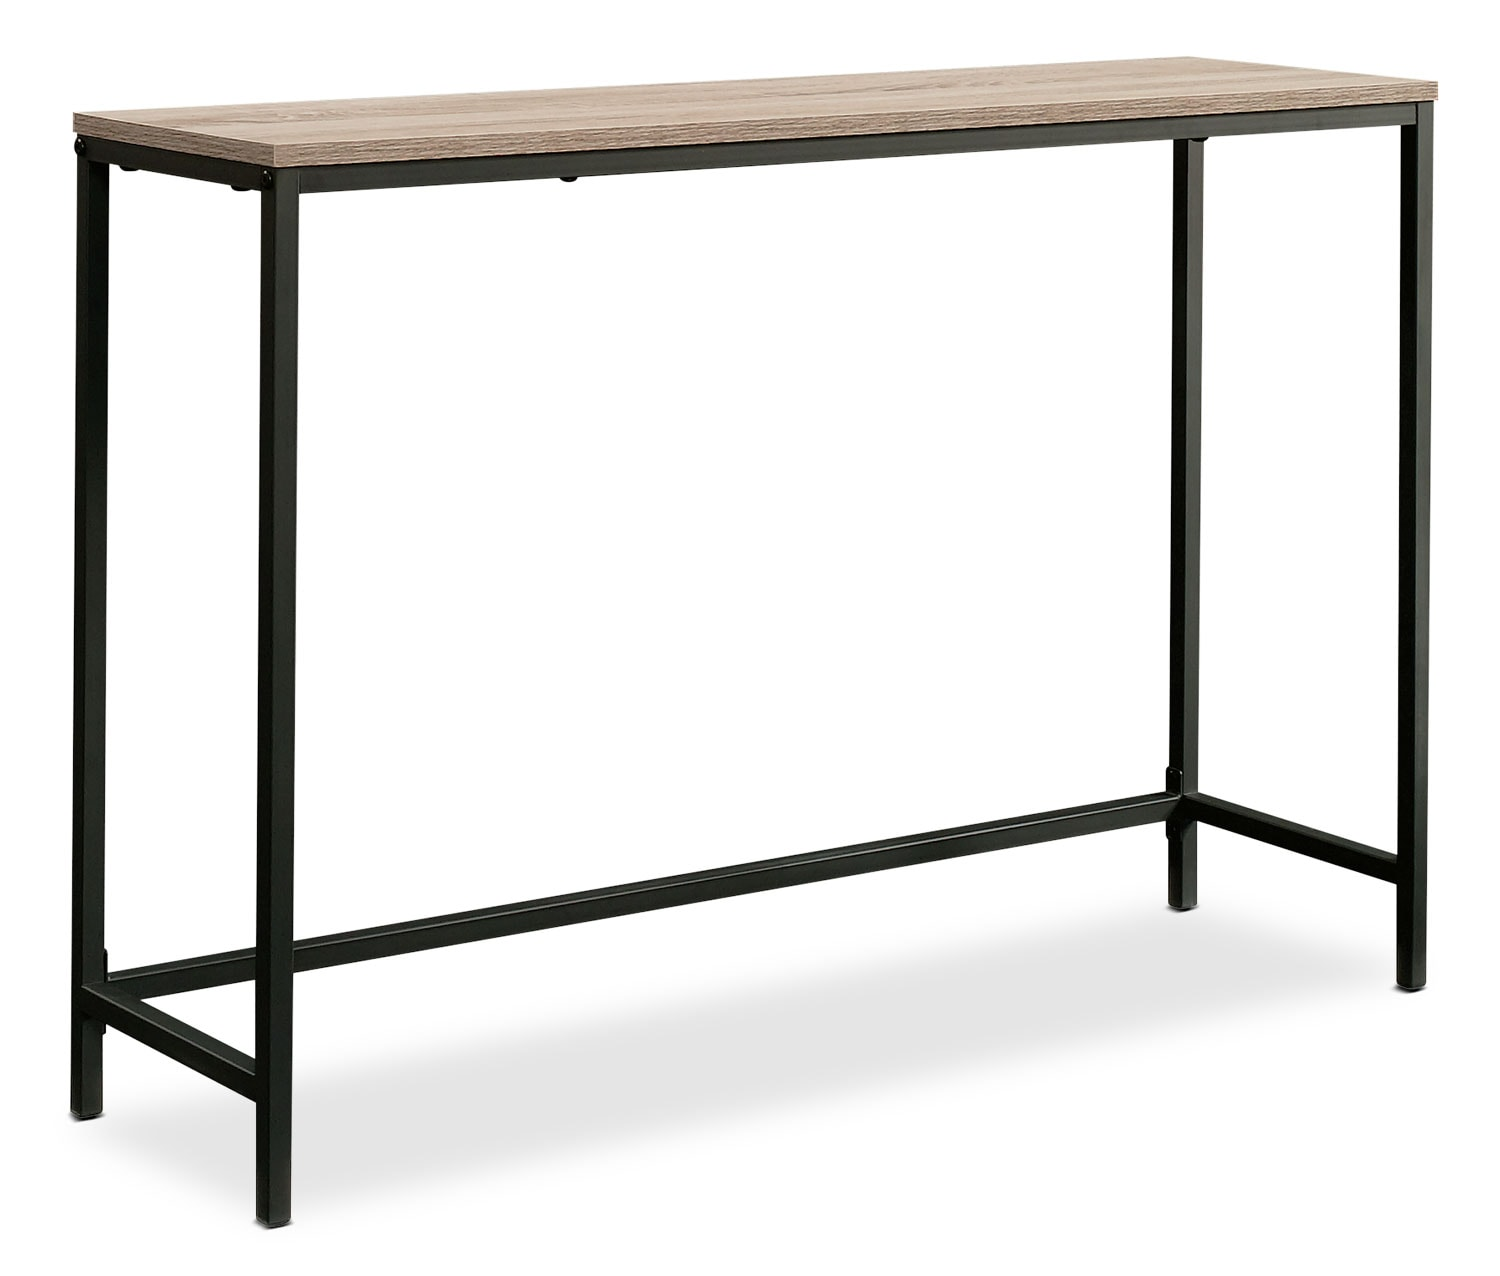 Accent and Occasional Furniture - North Avenue Sofa Table